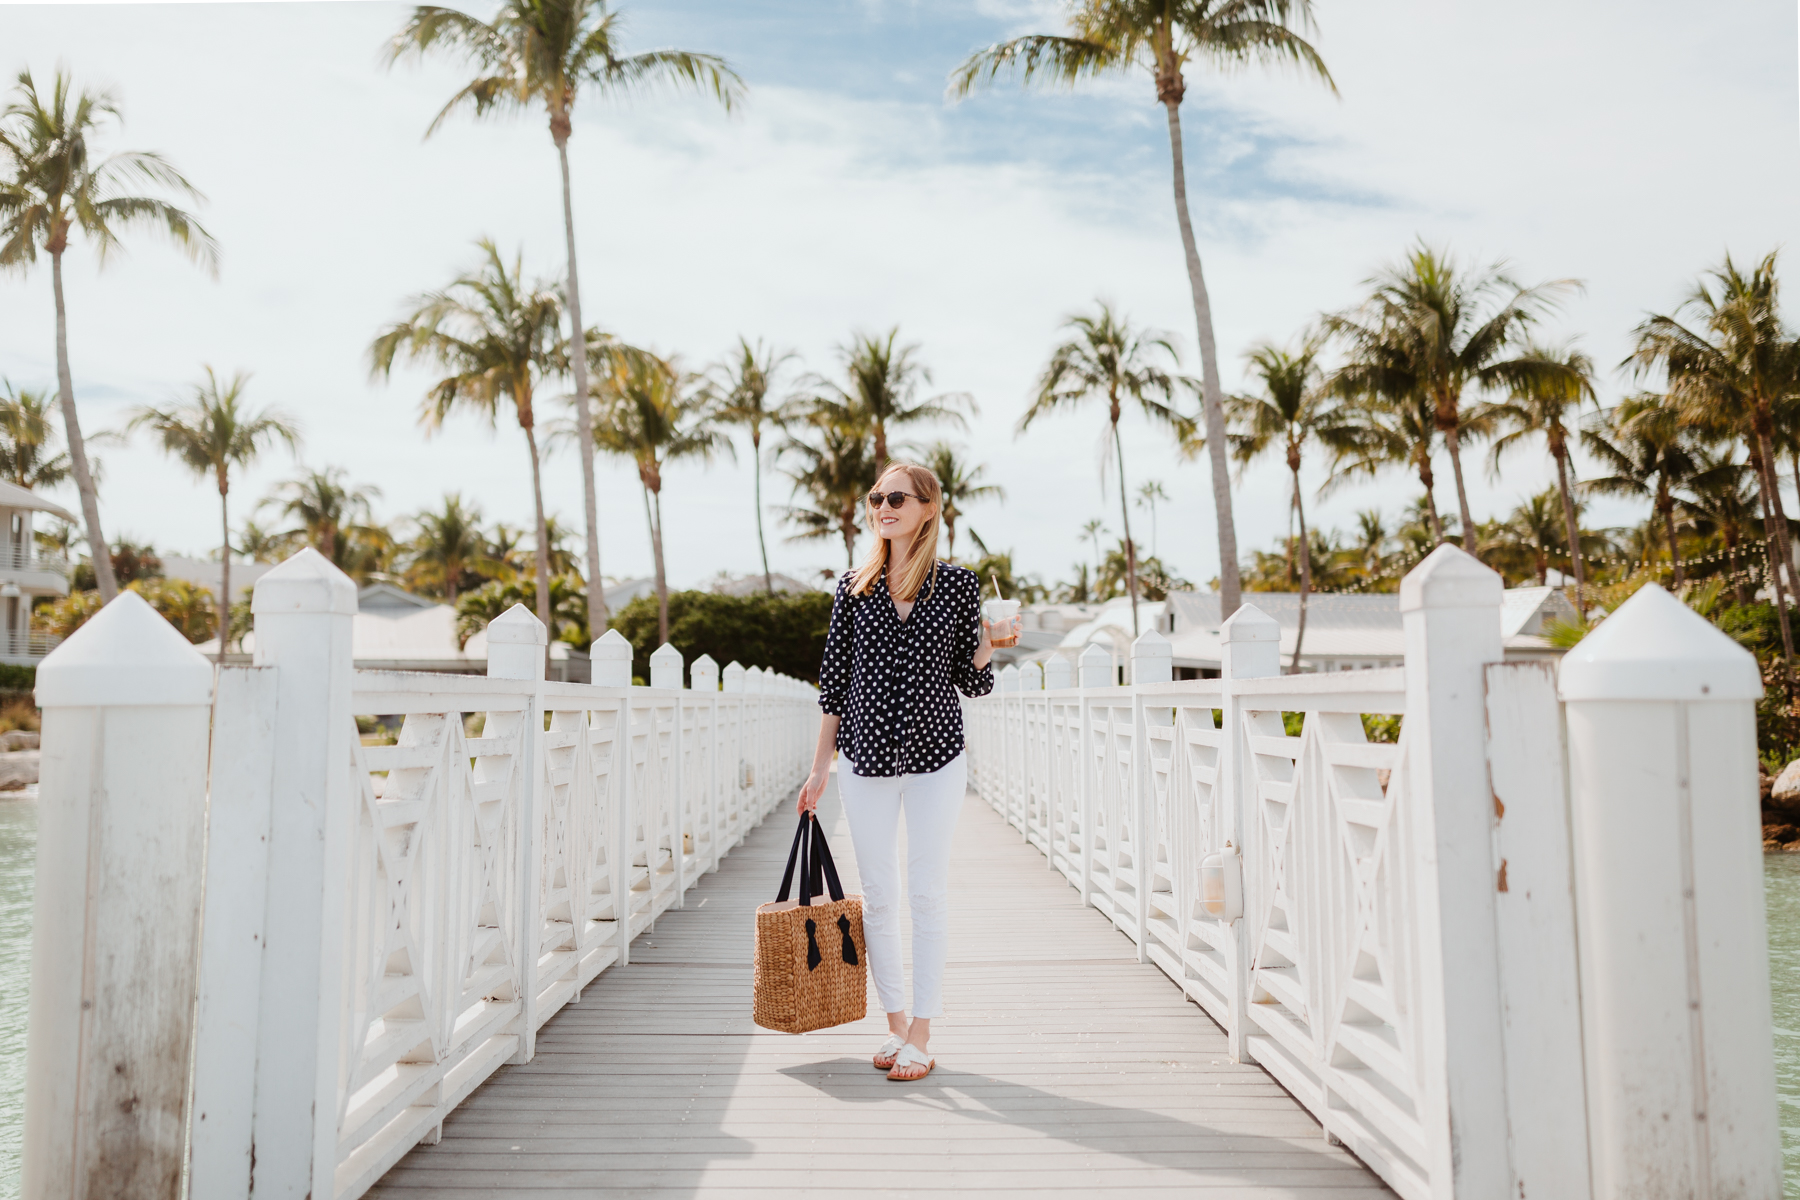 Kelly Larkin Outfit Details: J.Crew Navy Polka Dot Top / Pamela Munson Woven Tote / Jack Rogers / J Brand Maternity Ankle Jeans